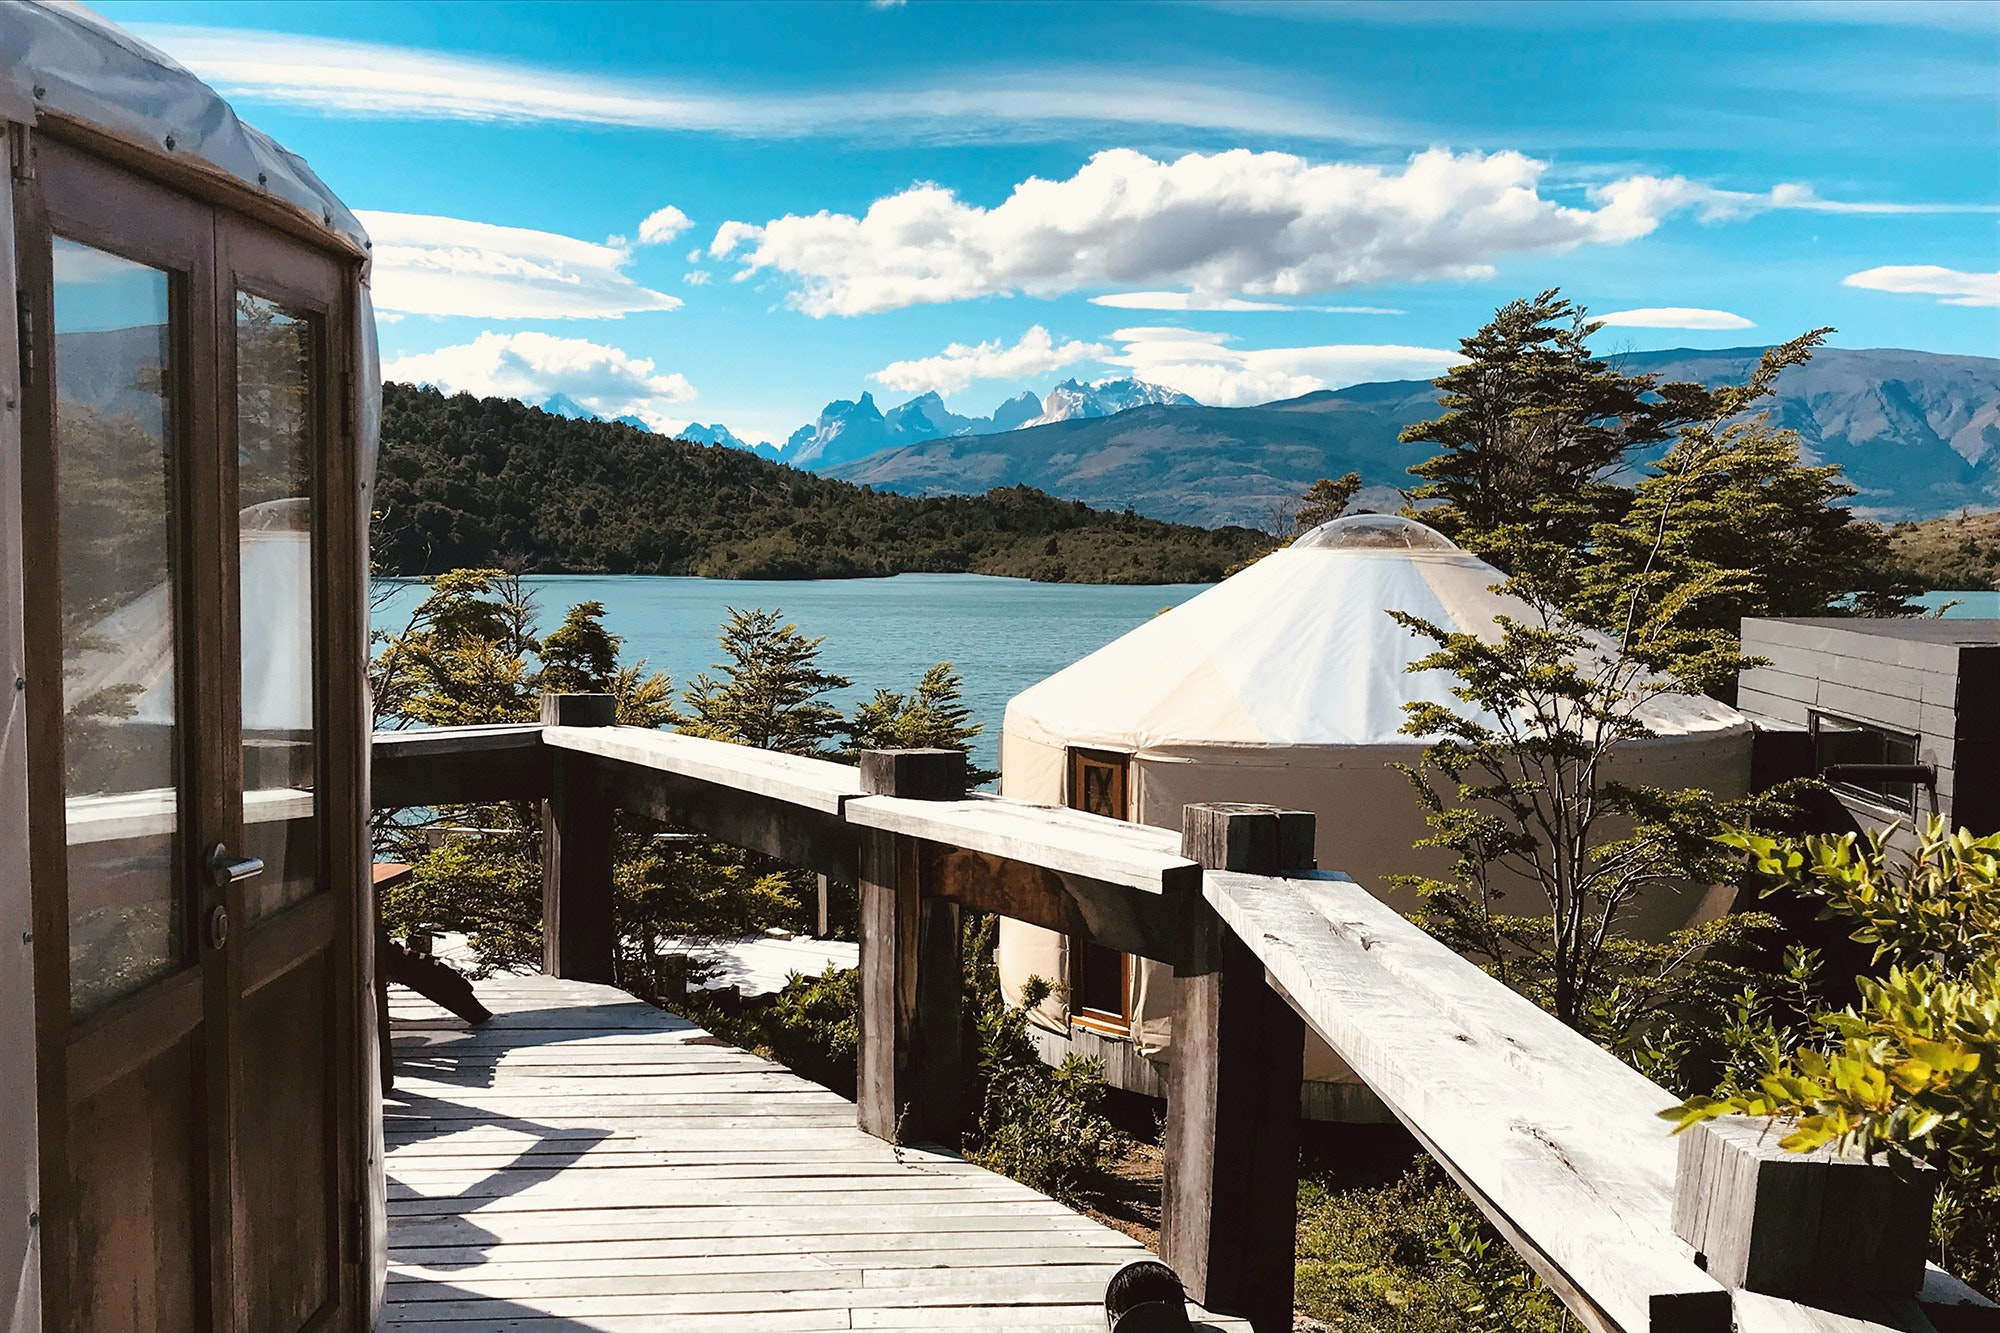 Patagonia Camp sits just outside Torres del Paine National Park in Chile, and its pristine, private landscapes offer guests a glimpse of what the area may have looked like before it became famous.